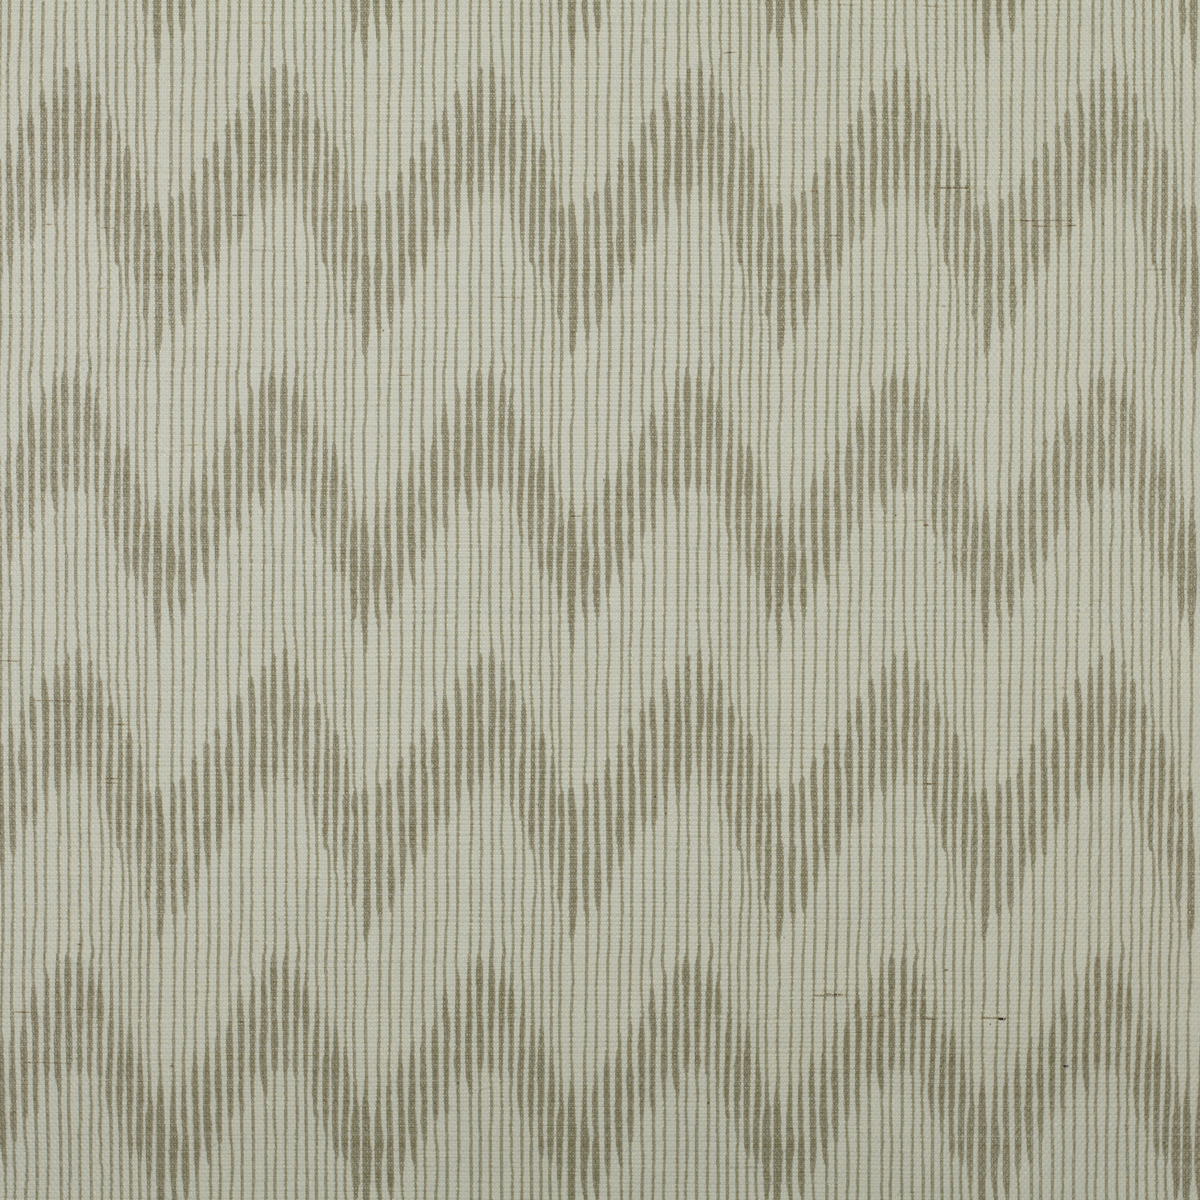 Patterned Grasscloth Wallpaper: Bernard Thorp Fabric And